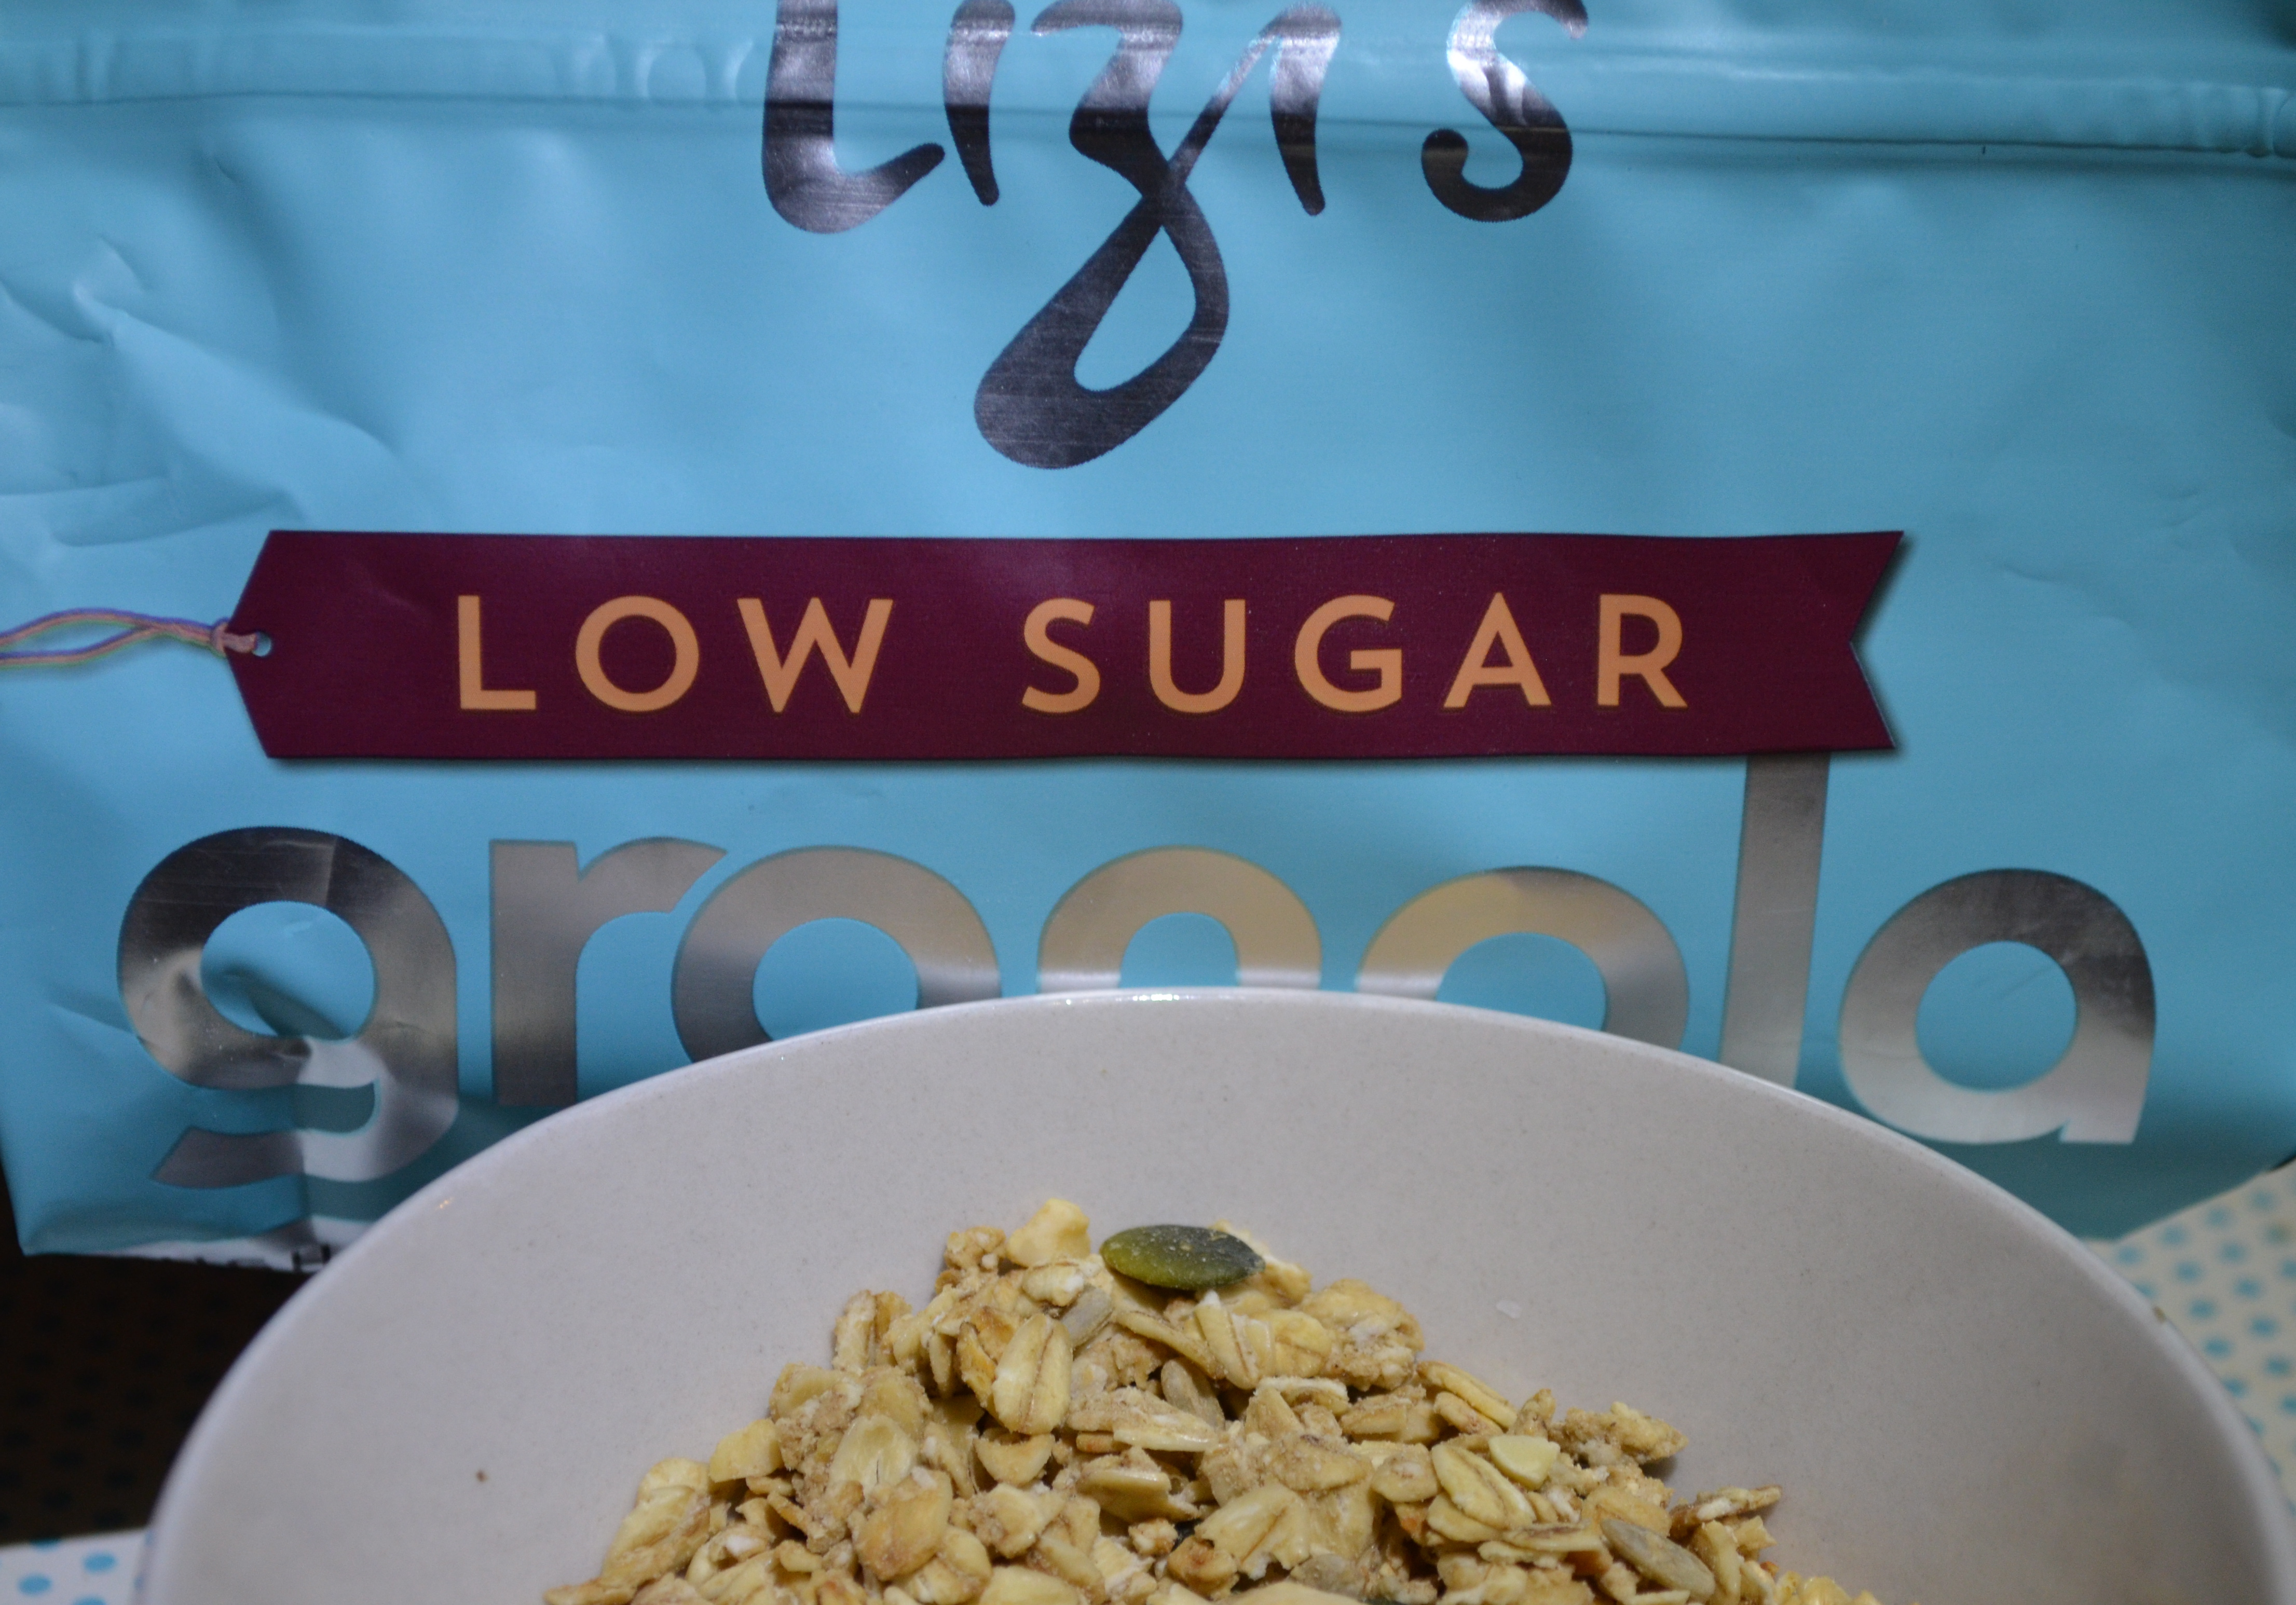 Dietitian UK: Lizi's Low Sugar Granola Review